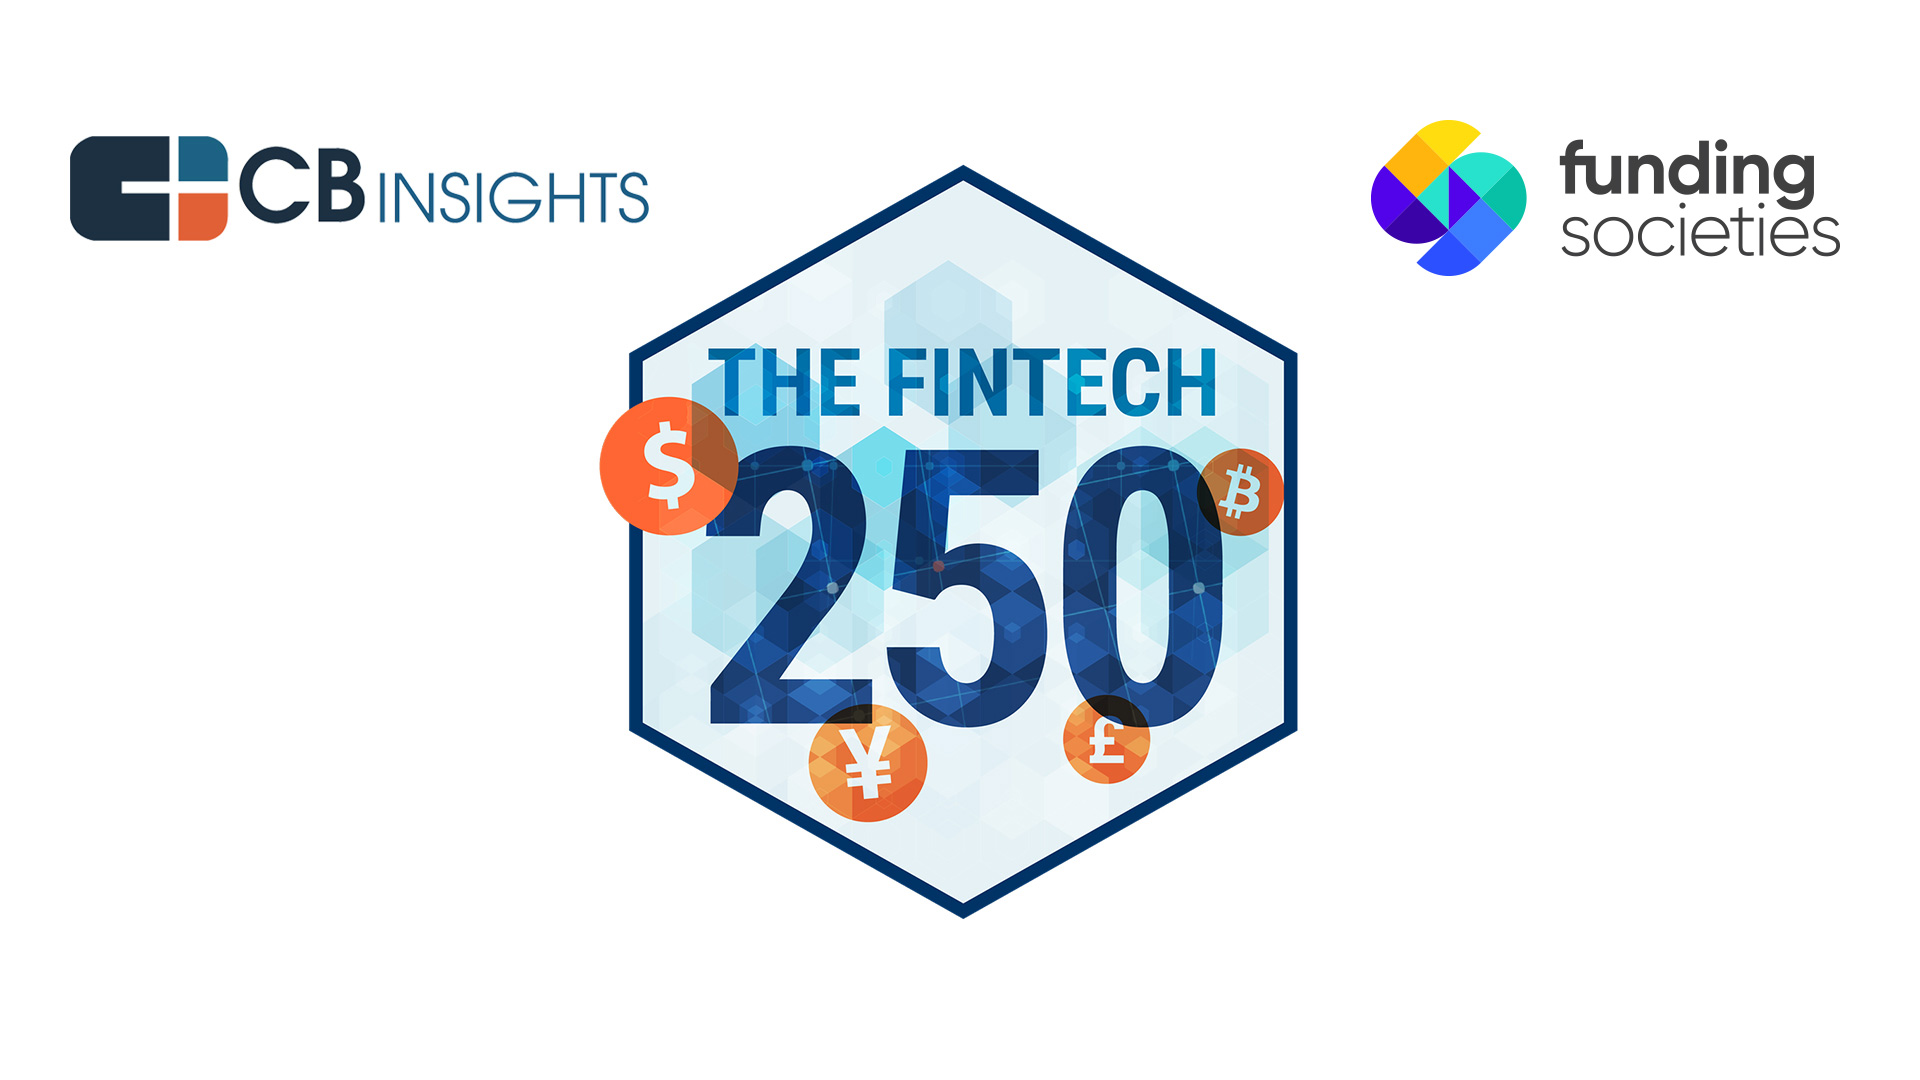 Funding Societies Is the Only P2P Financing Company from Southeast Asia Included on the Prestigious Fintech 250 List